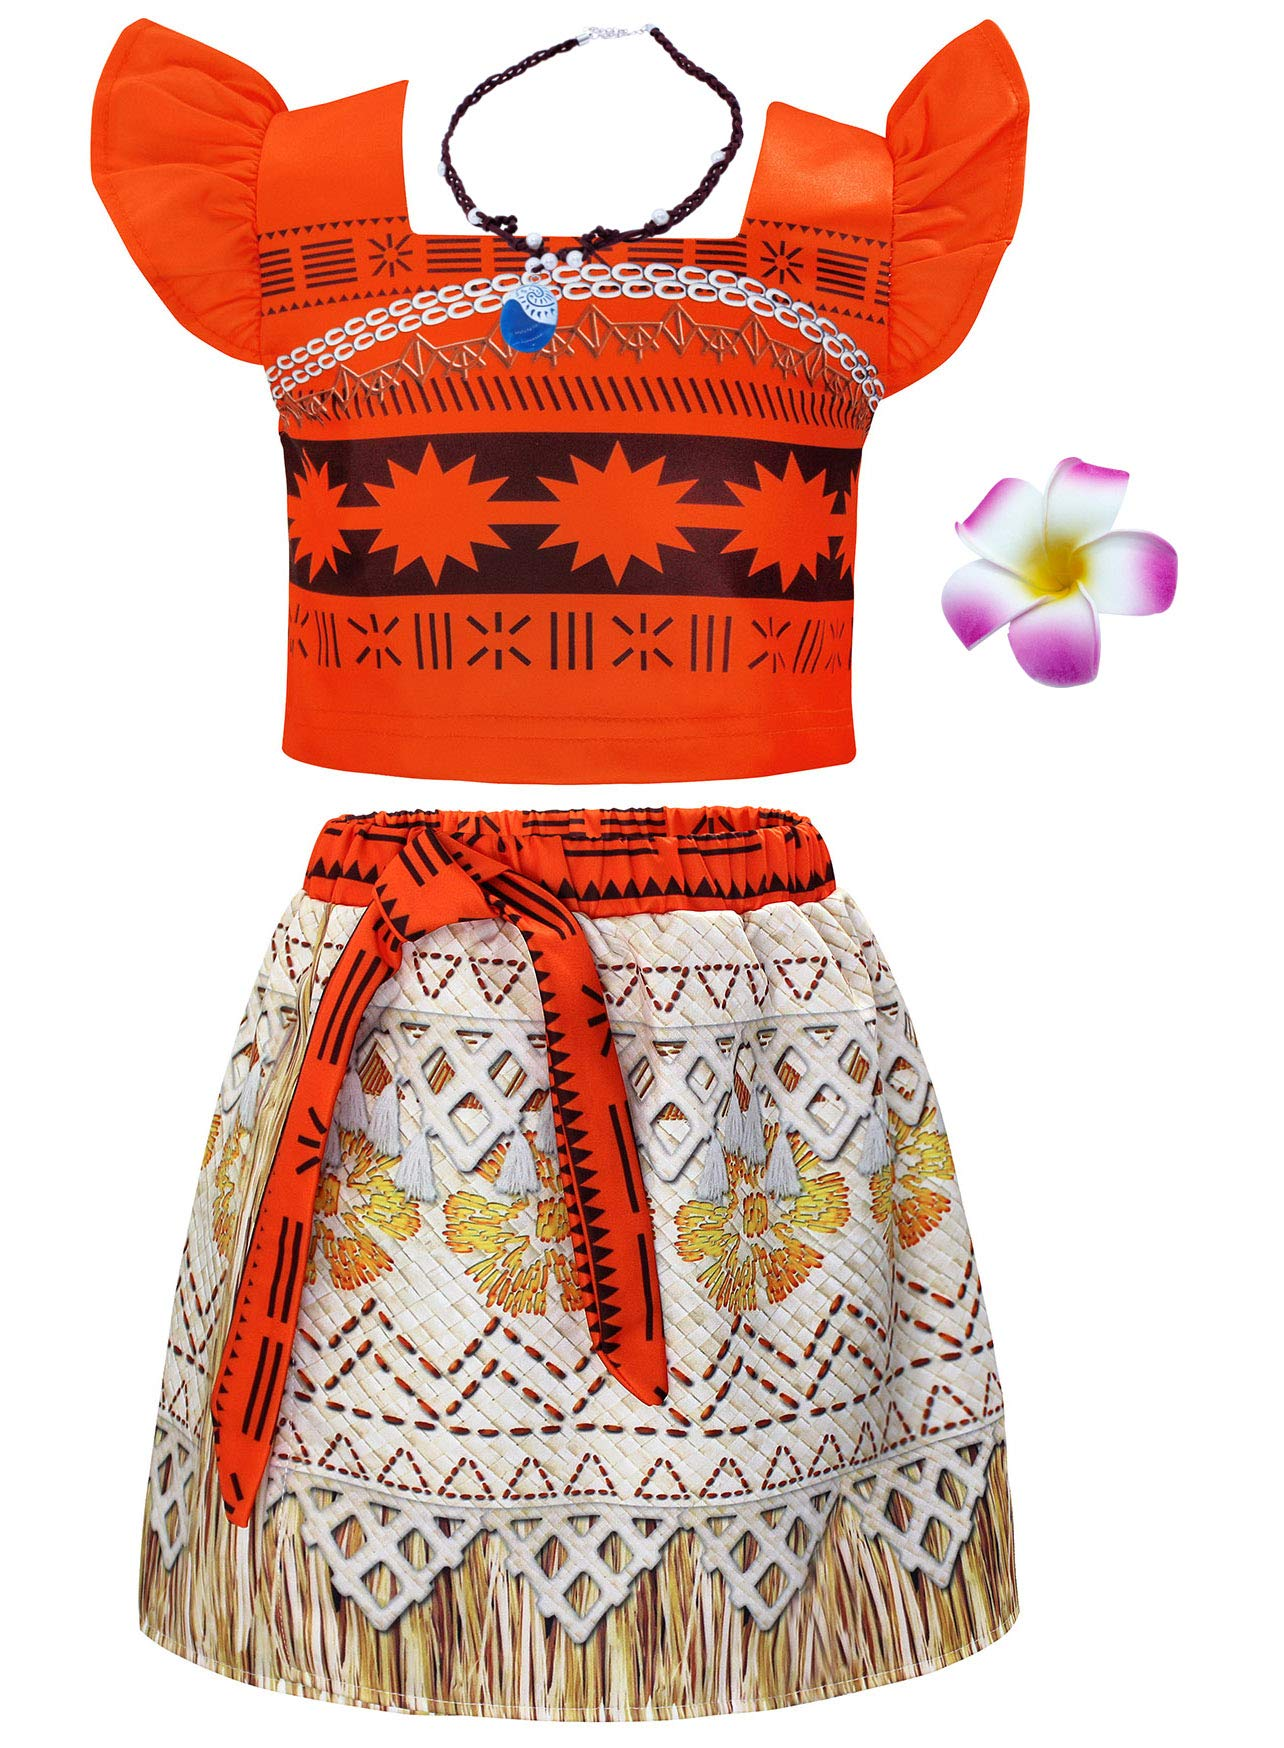 50ff8e6ab1df AmzBarley Moana Costume for Girls Dress up Toddler Baby Cosplay Outfit  Little Kids Skirt Sets